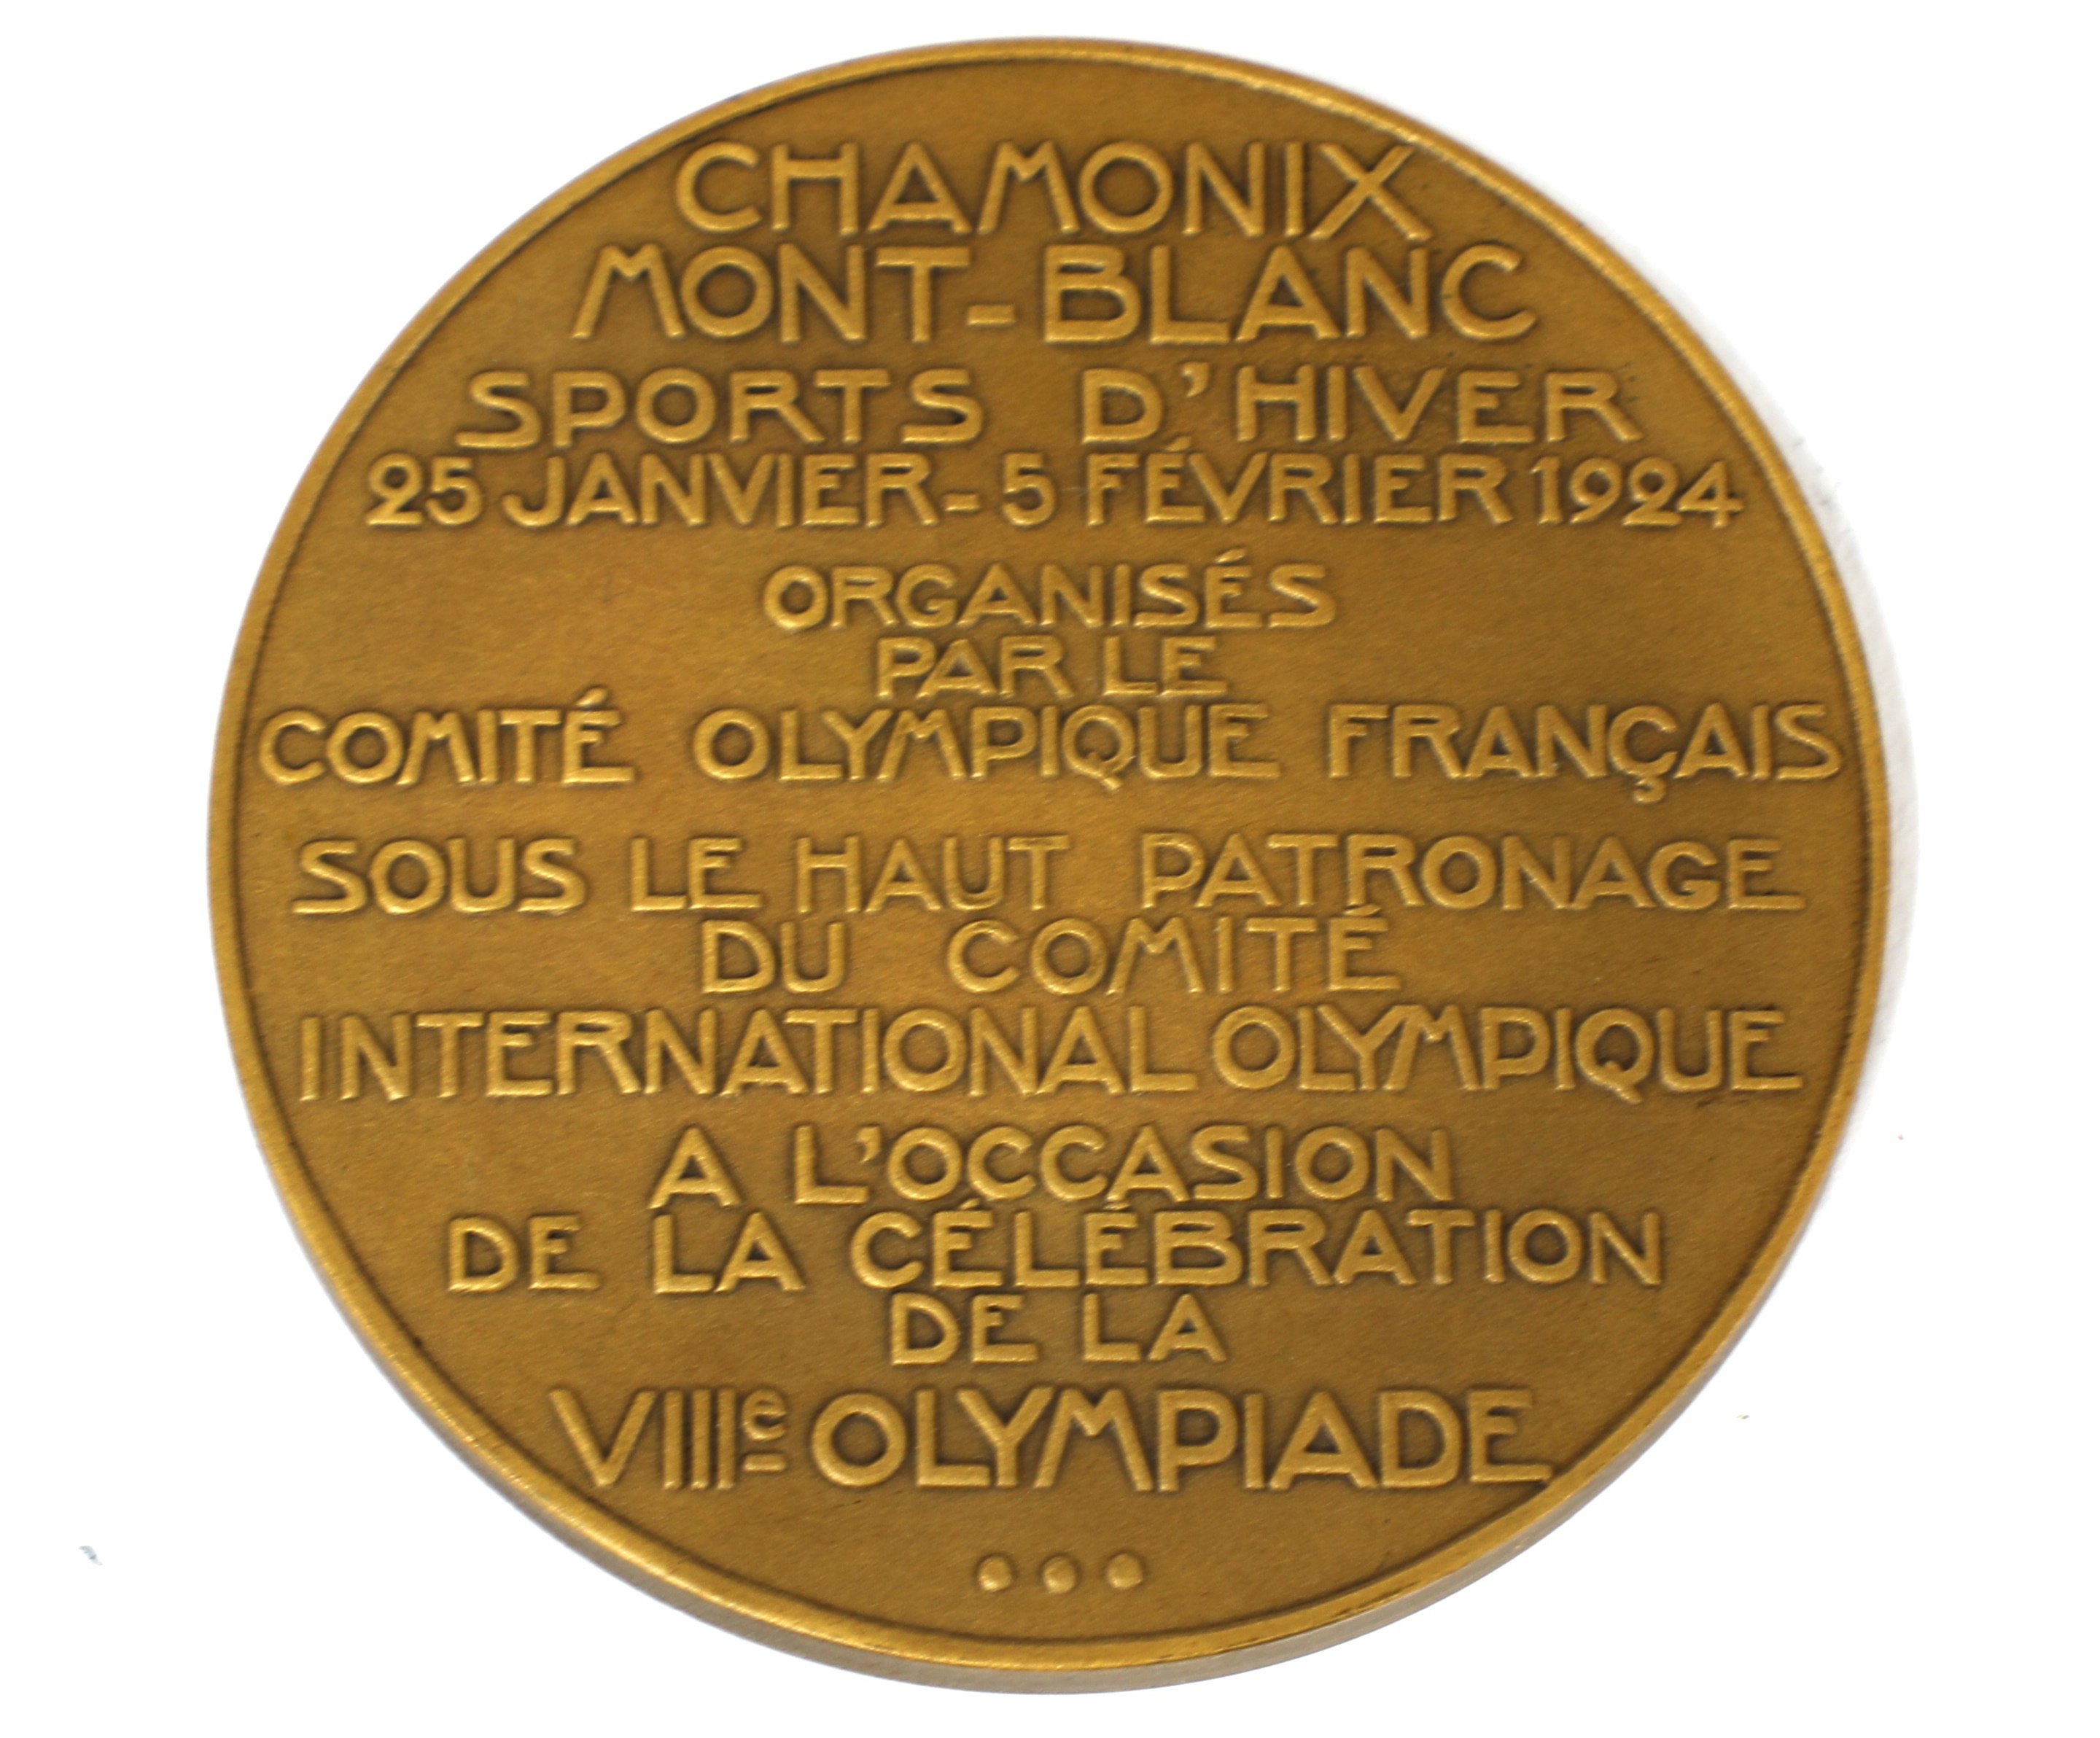 A bronze medal from the 1924 Winter Olympics at Chamonix, designed by Raoul Bernard